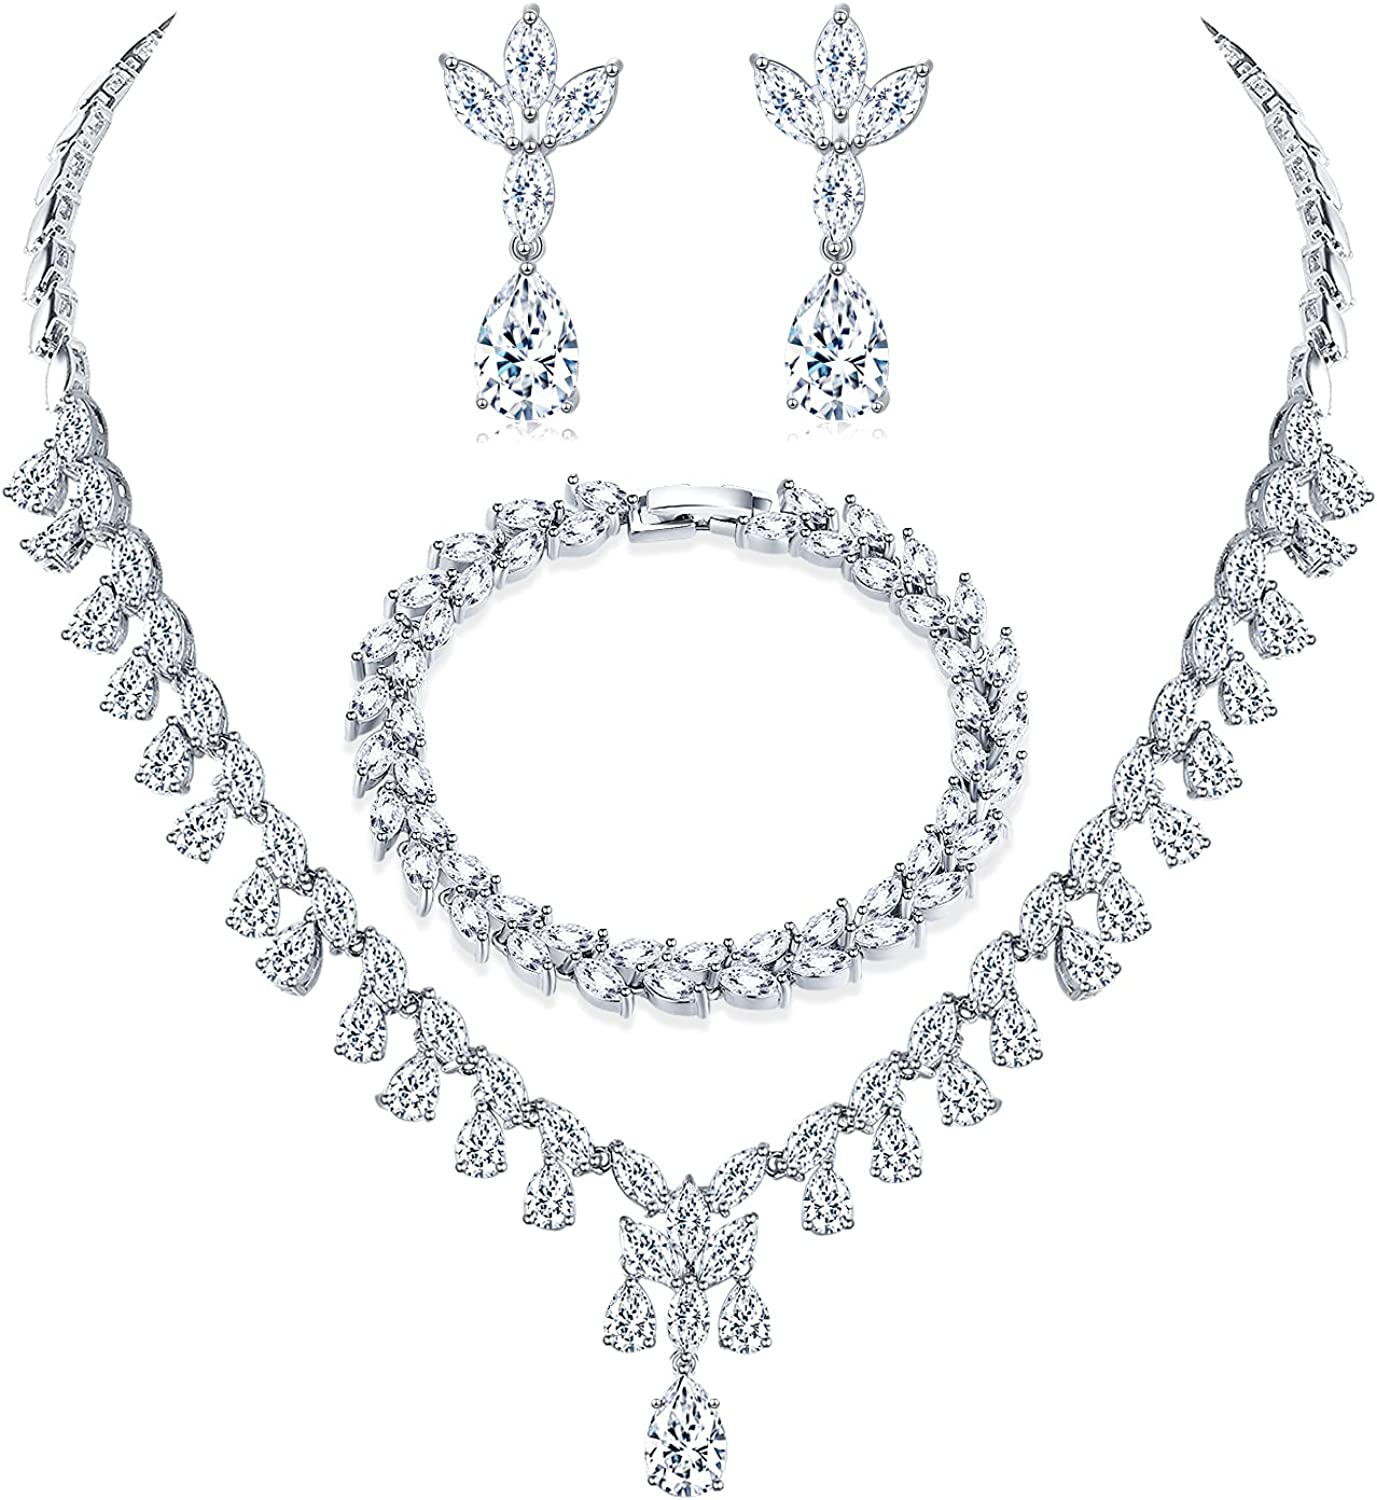 Cubic Zirconia Rhinestones Wedding Jewelry for Bride|White Gold Plated Bridesmaid Jewelry Set for Wedding|Necklace Earrings Tennis Bracelets for Women Bride Bridesmaid on Wedding Important Occasions